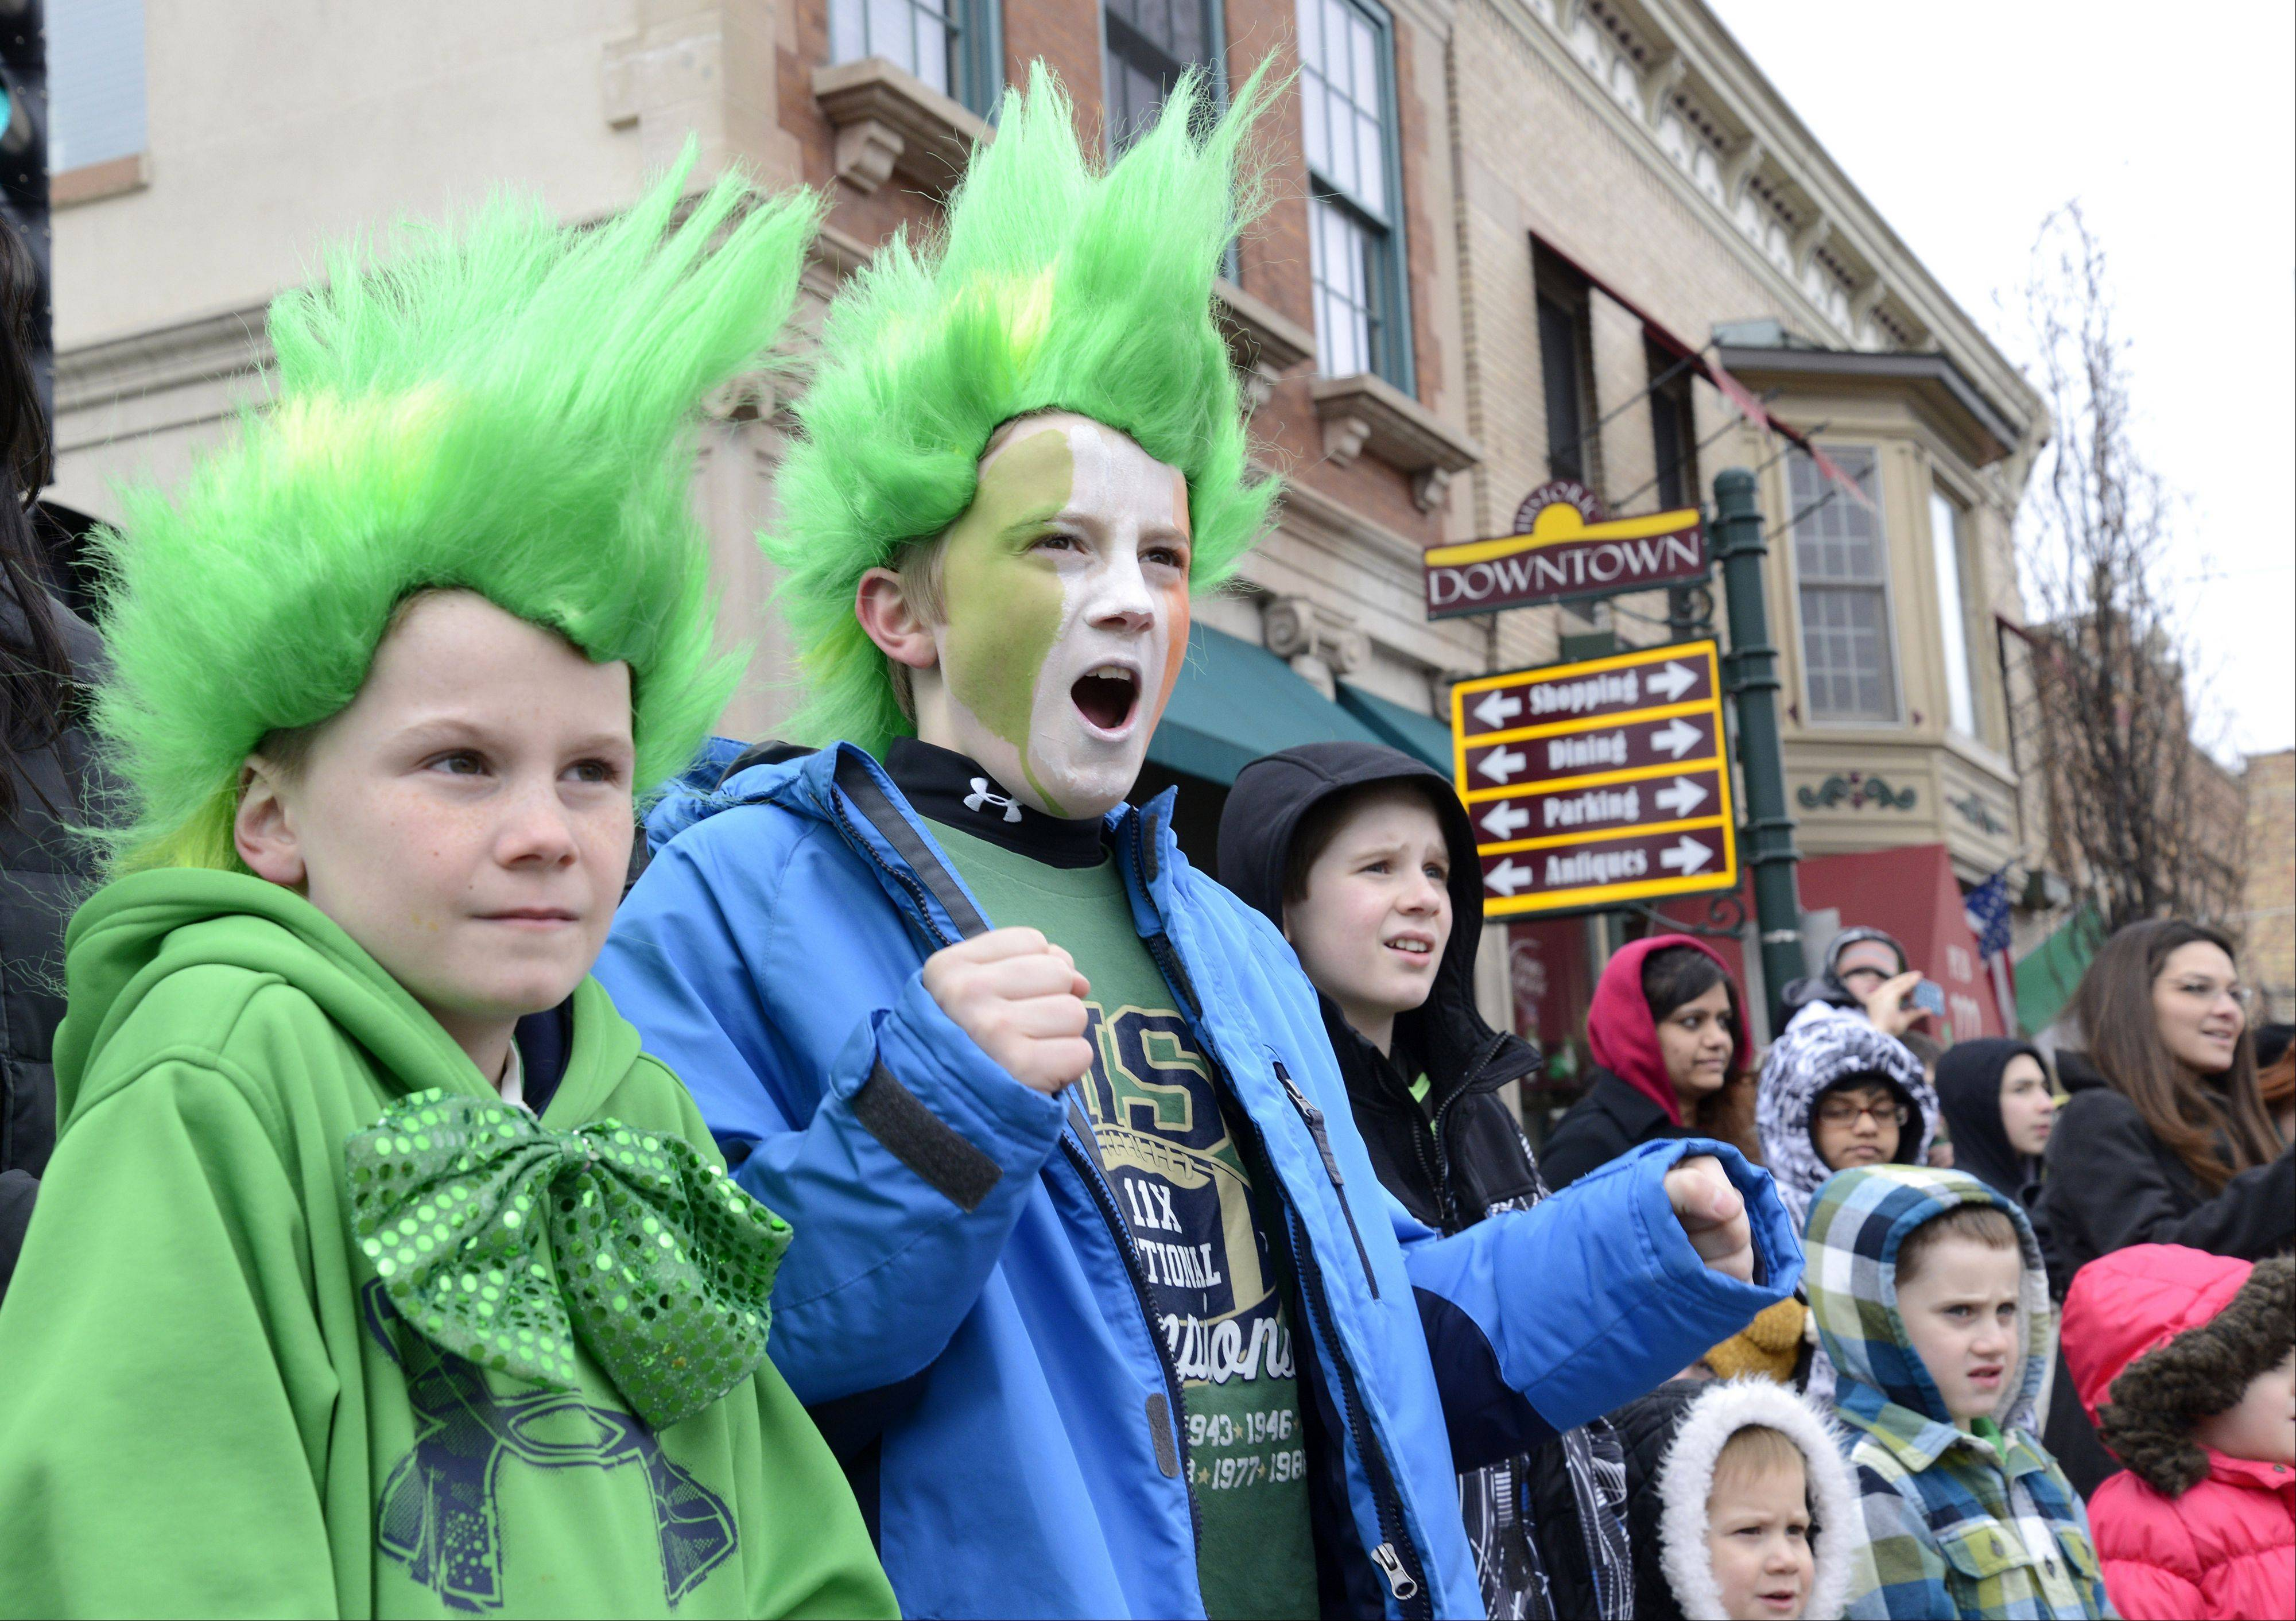 Daniel Shanahan, 9, left, and his brother Jameson, 12, of Geneva, watch the St. Patrick's Day parade in downtown St. Charles on Saturday. The boys and their sister, Kate, 6, come to the parade almost every year.